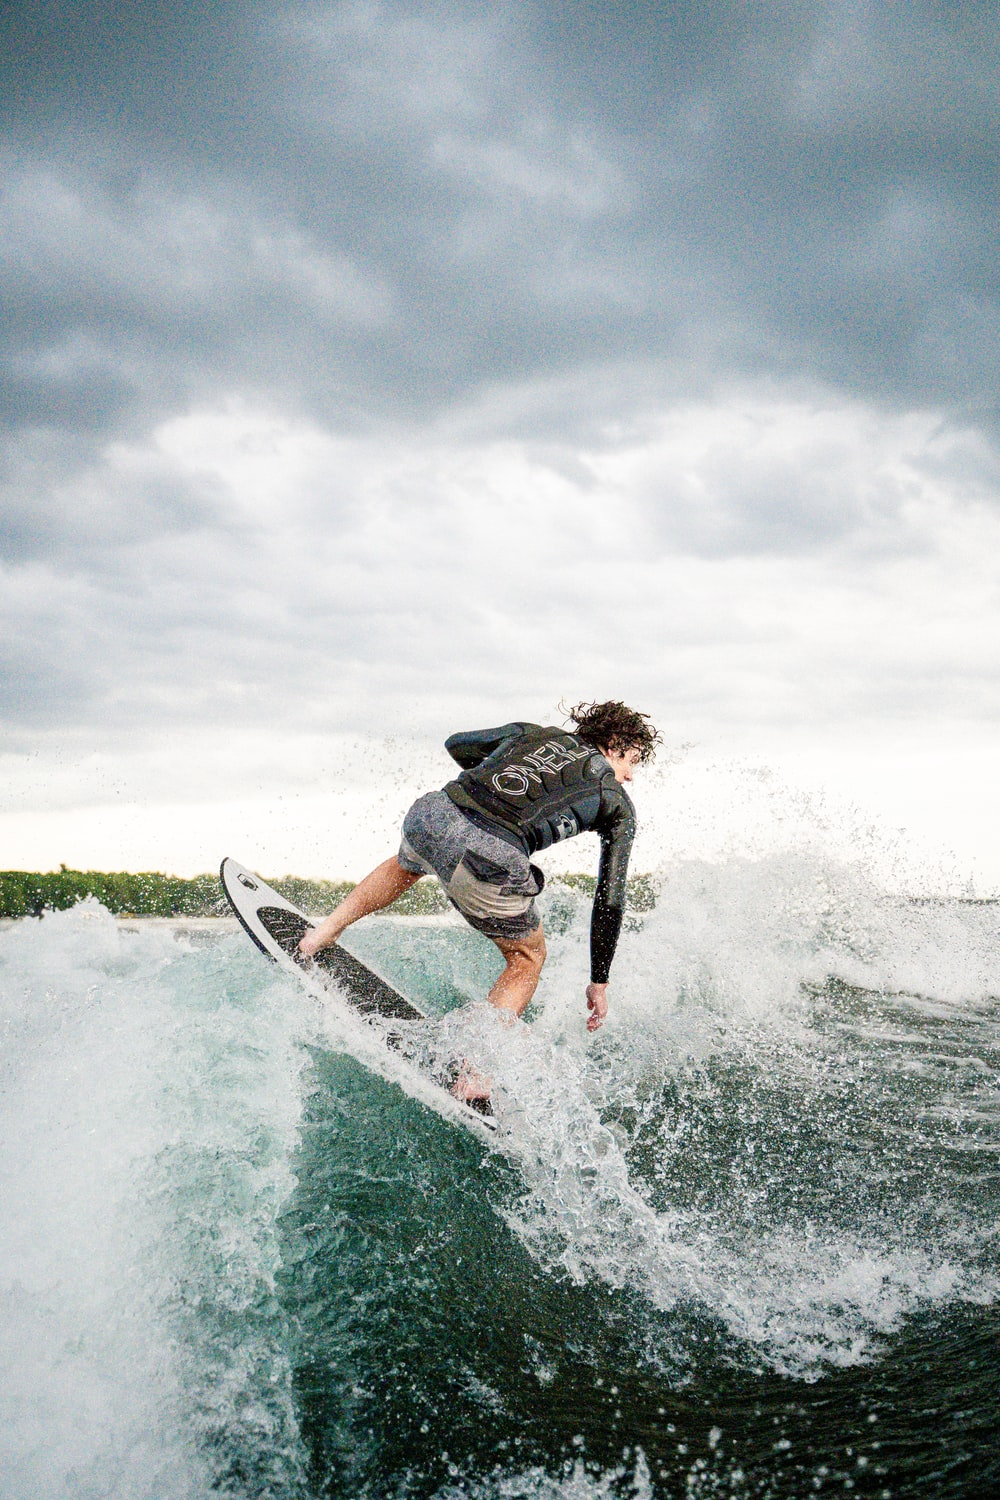 man in black and white wet suit riding white surfboard on sea waves during daytime